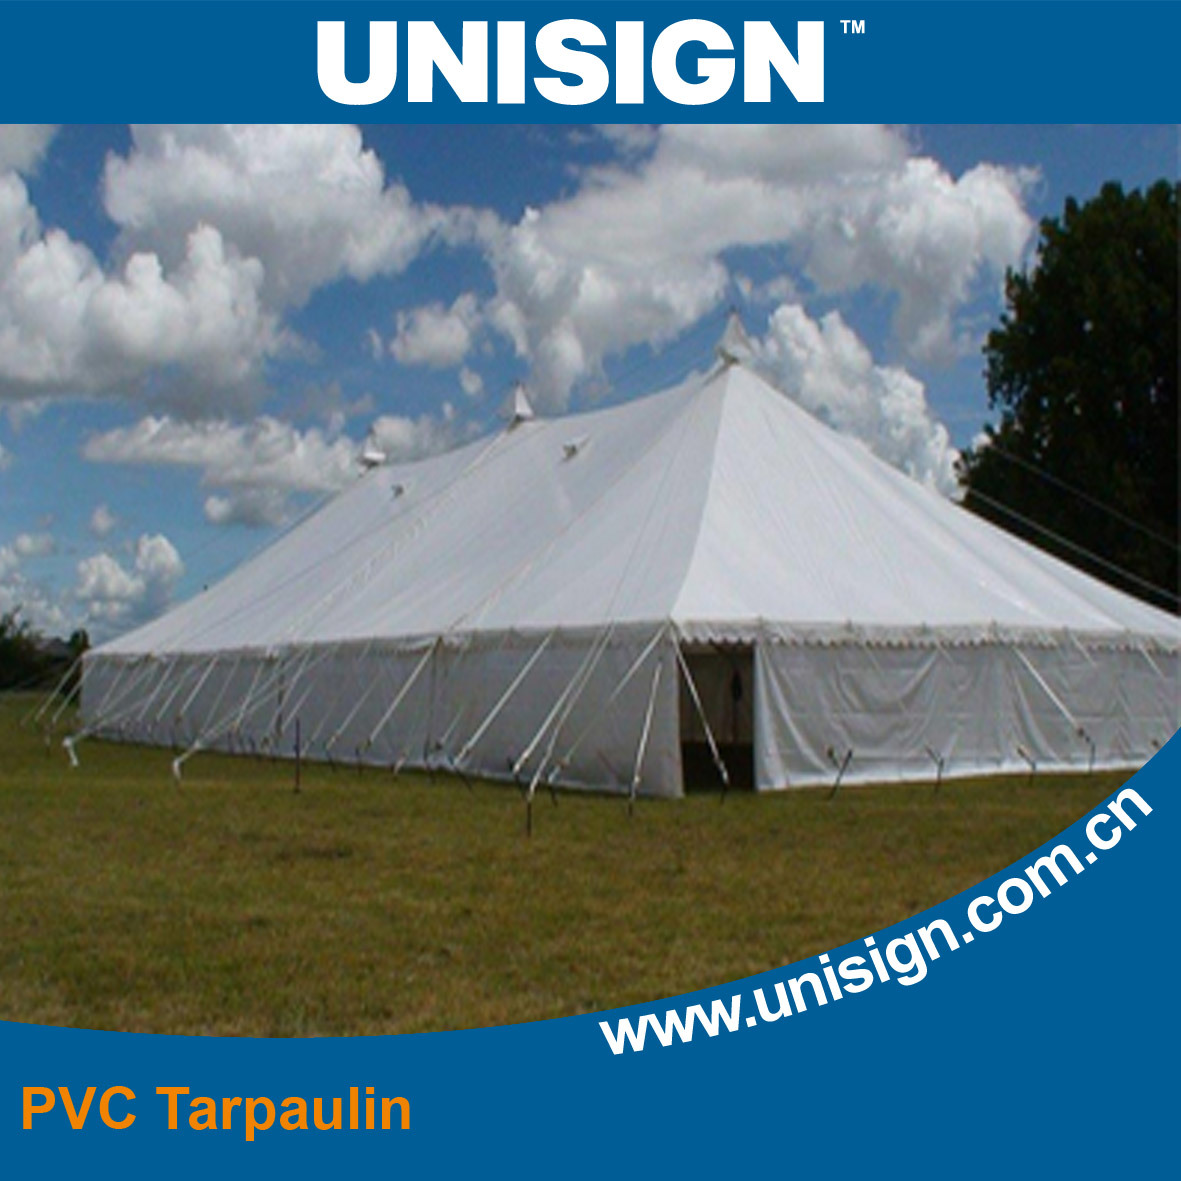 Waterproof, Anti-UV PVC Tarpaulin for Cover